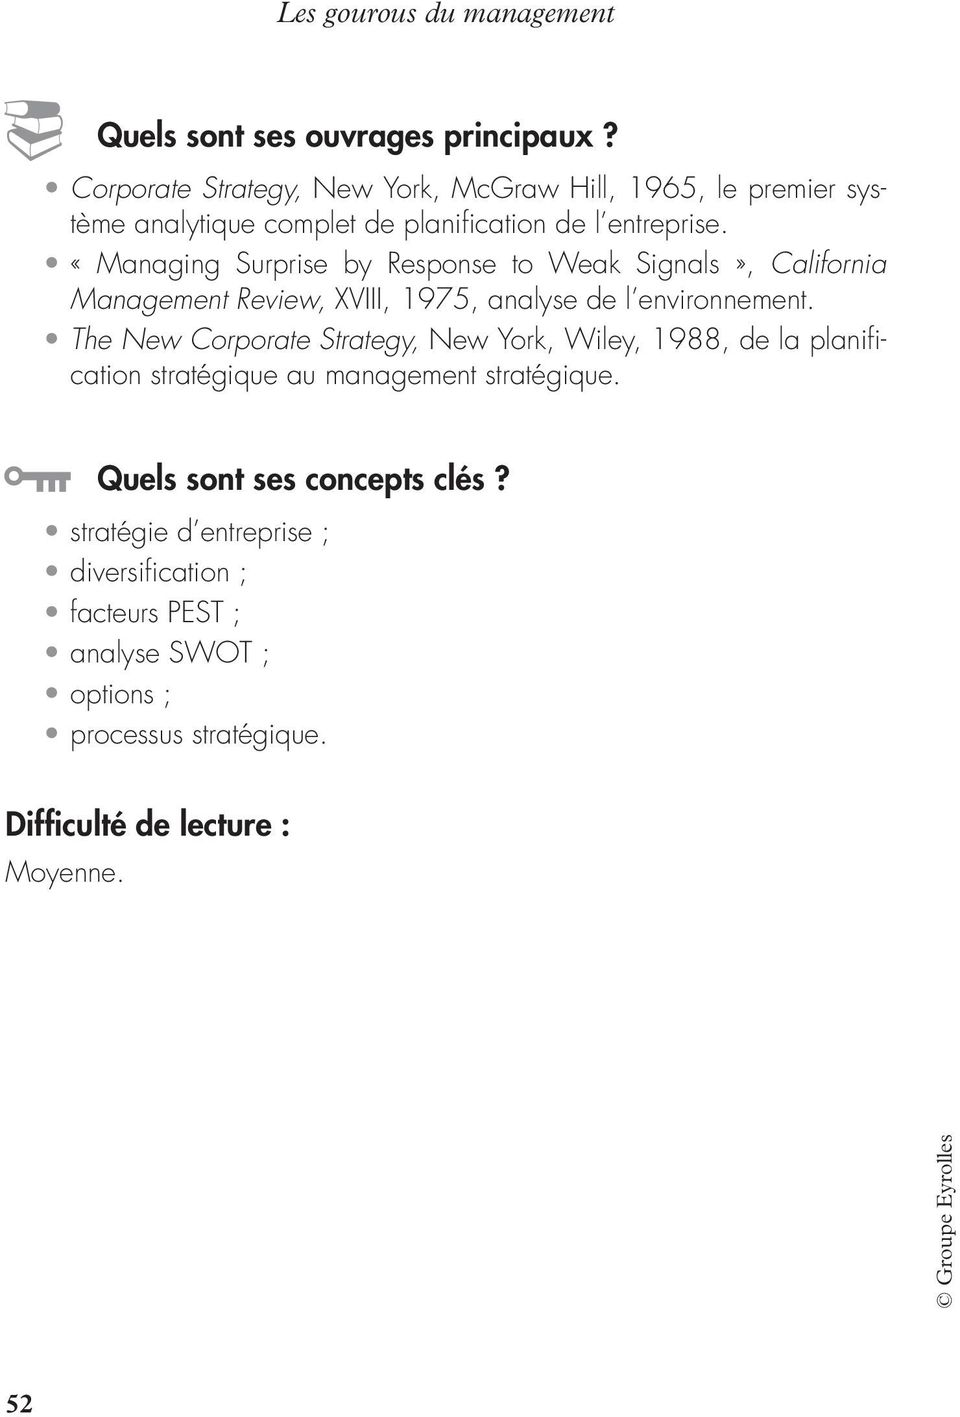 «Managing Surprise by Response to Weak Signals», California Management Review, XVIII, 1975, analyse de l environnement.